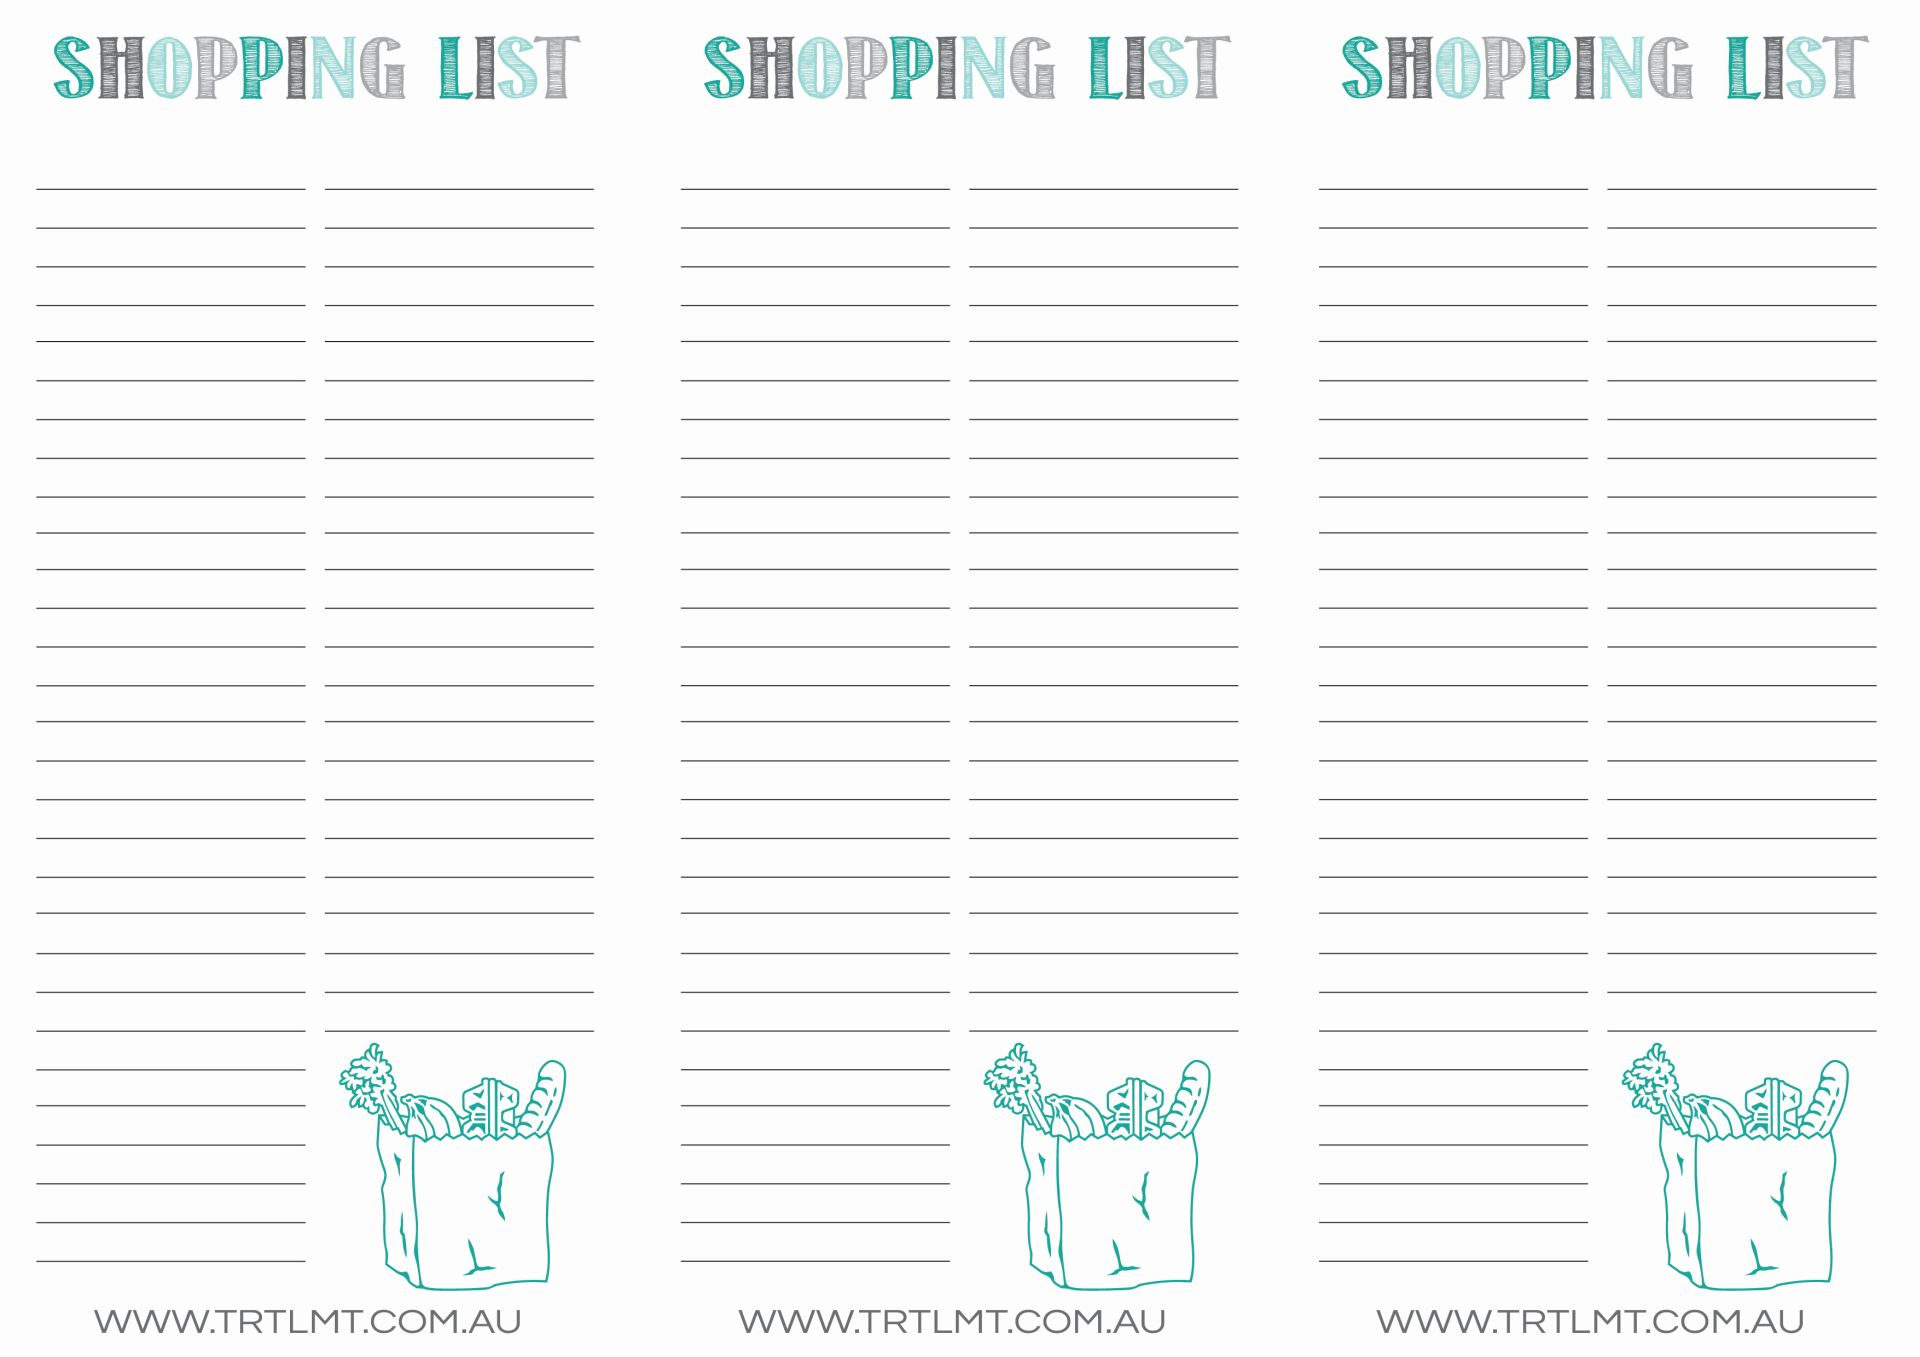 Shopping List FB